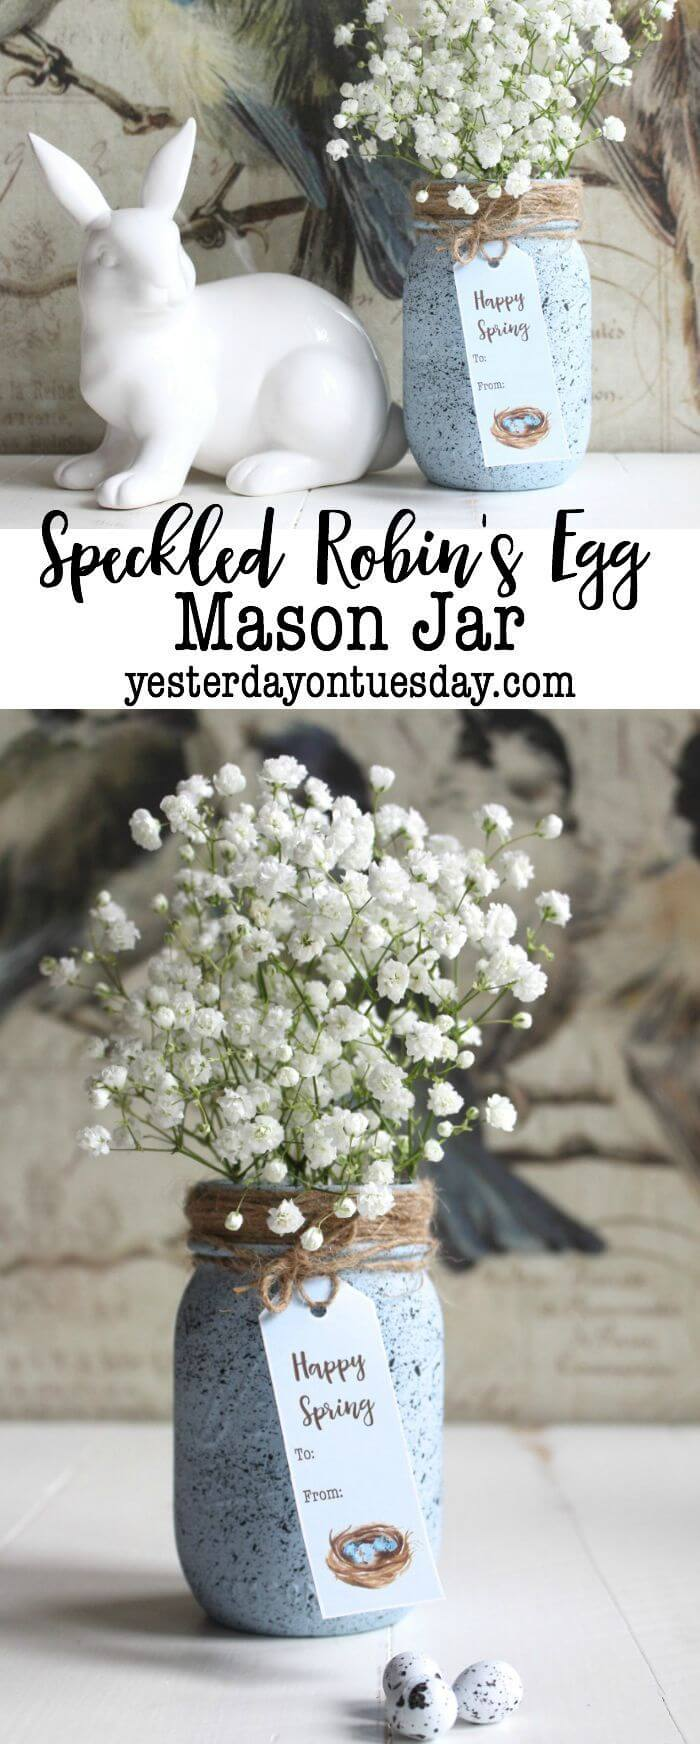 Mason Jars Speckled Like Robin's Eggs